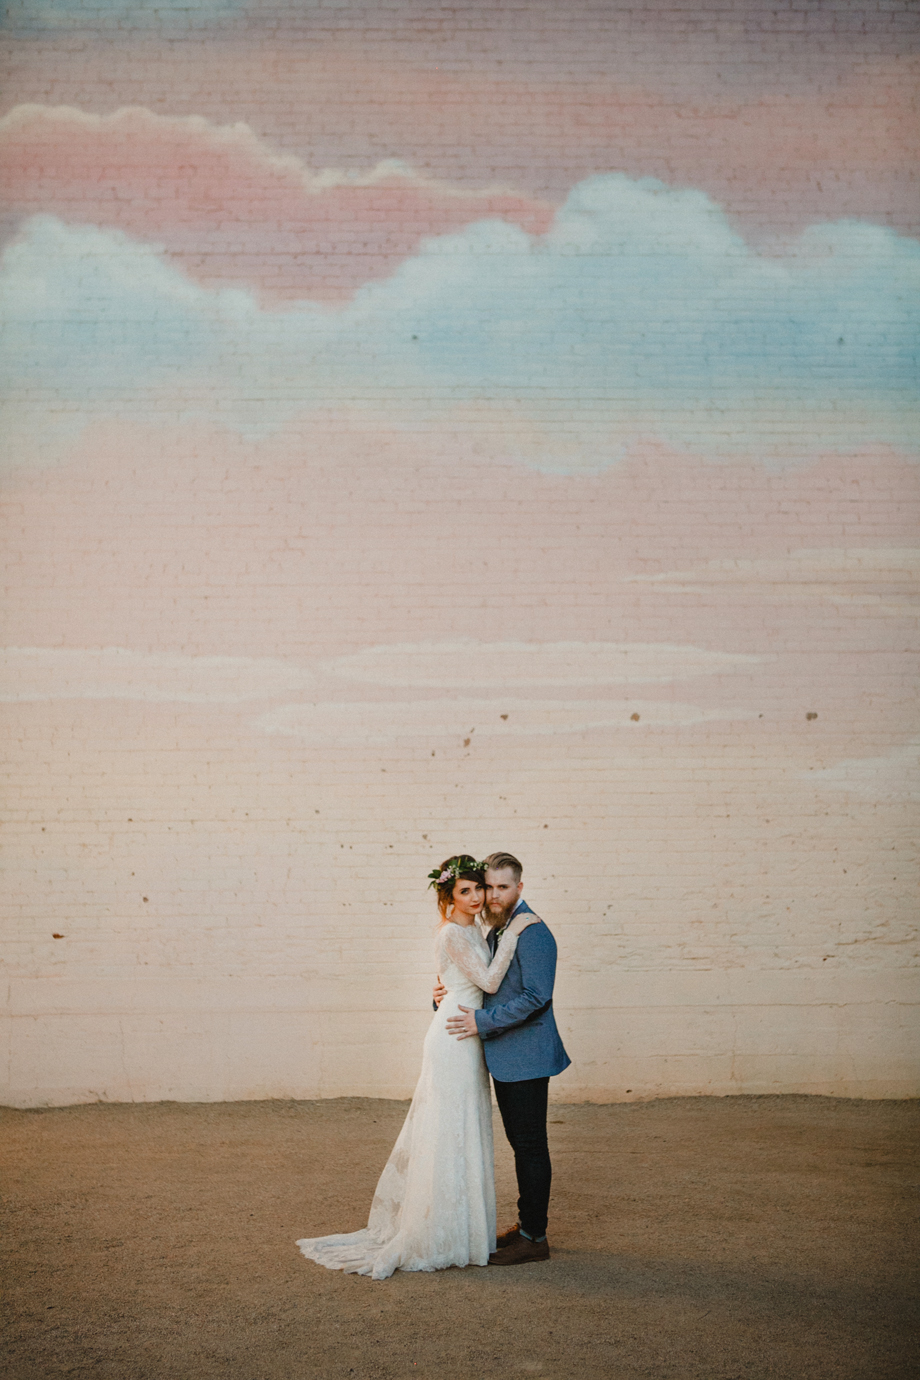 Jay & Jess, Weddings, Phoenix, AZ-125.jpg